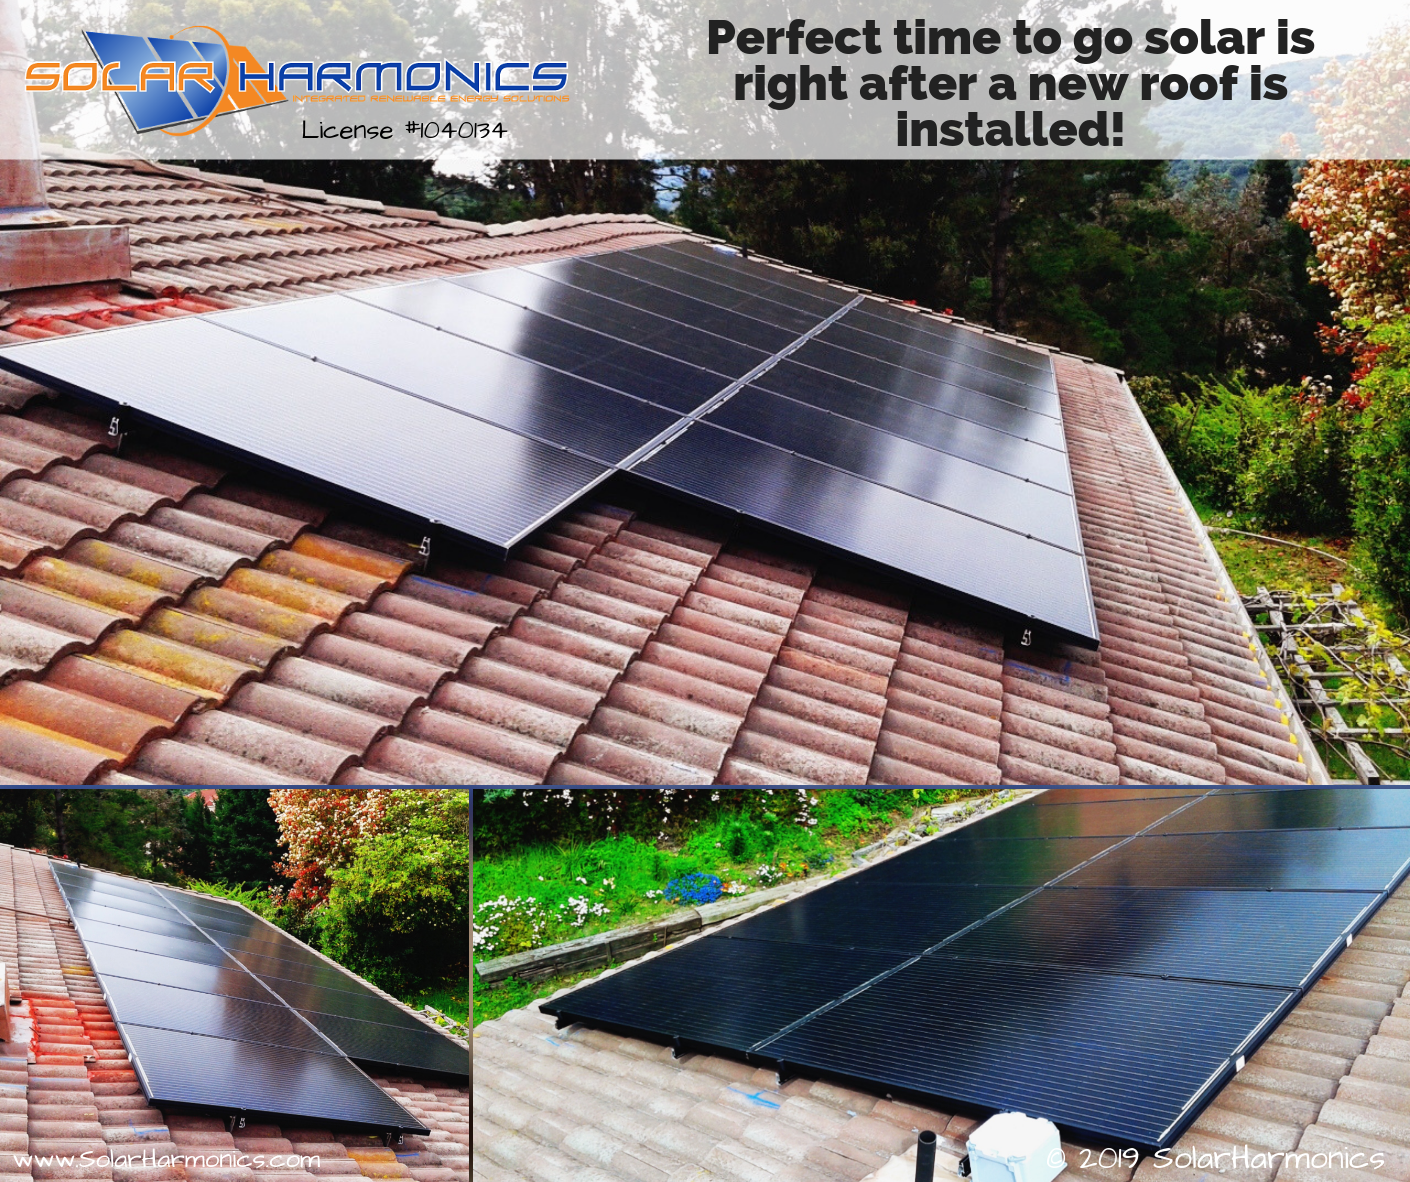 Perfect Time To Go Solar Is Right After A New Roof Is Installed Solaredge Technologies Inc Axitec Solar Usa E Solar Installation Solar Installation